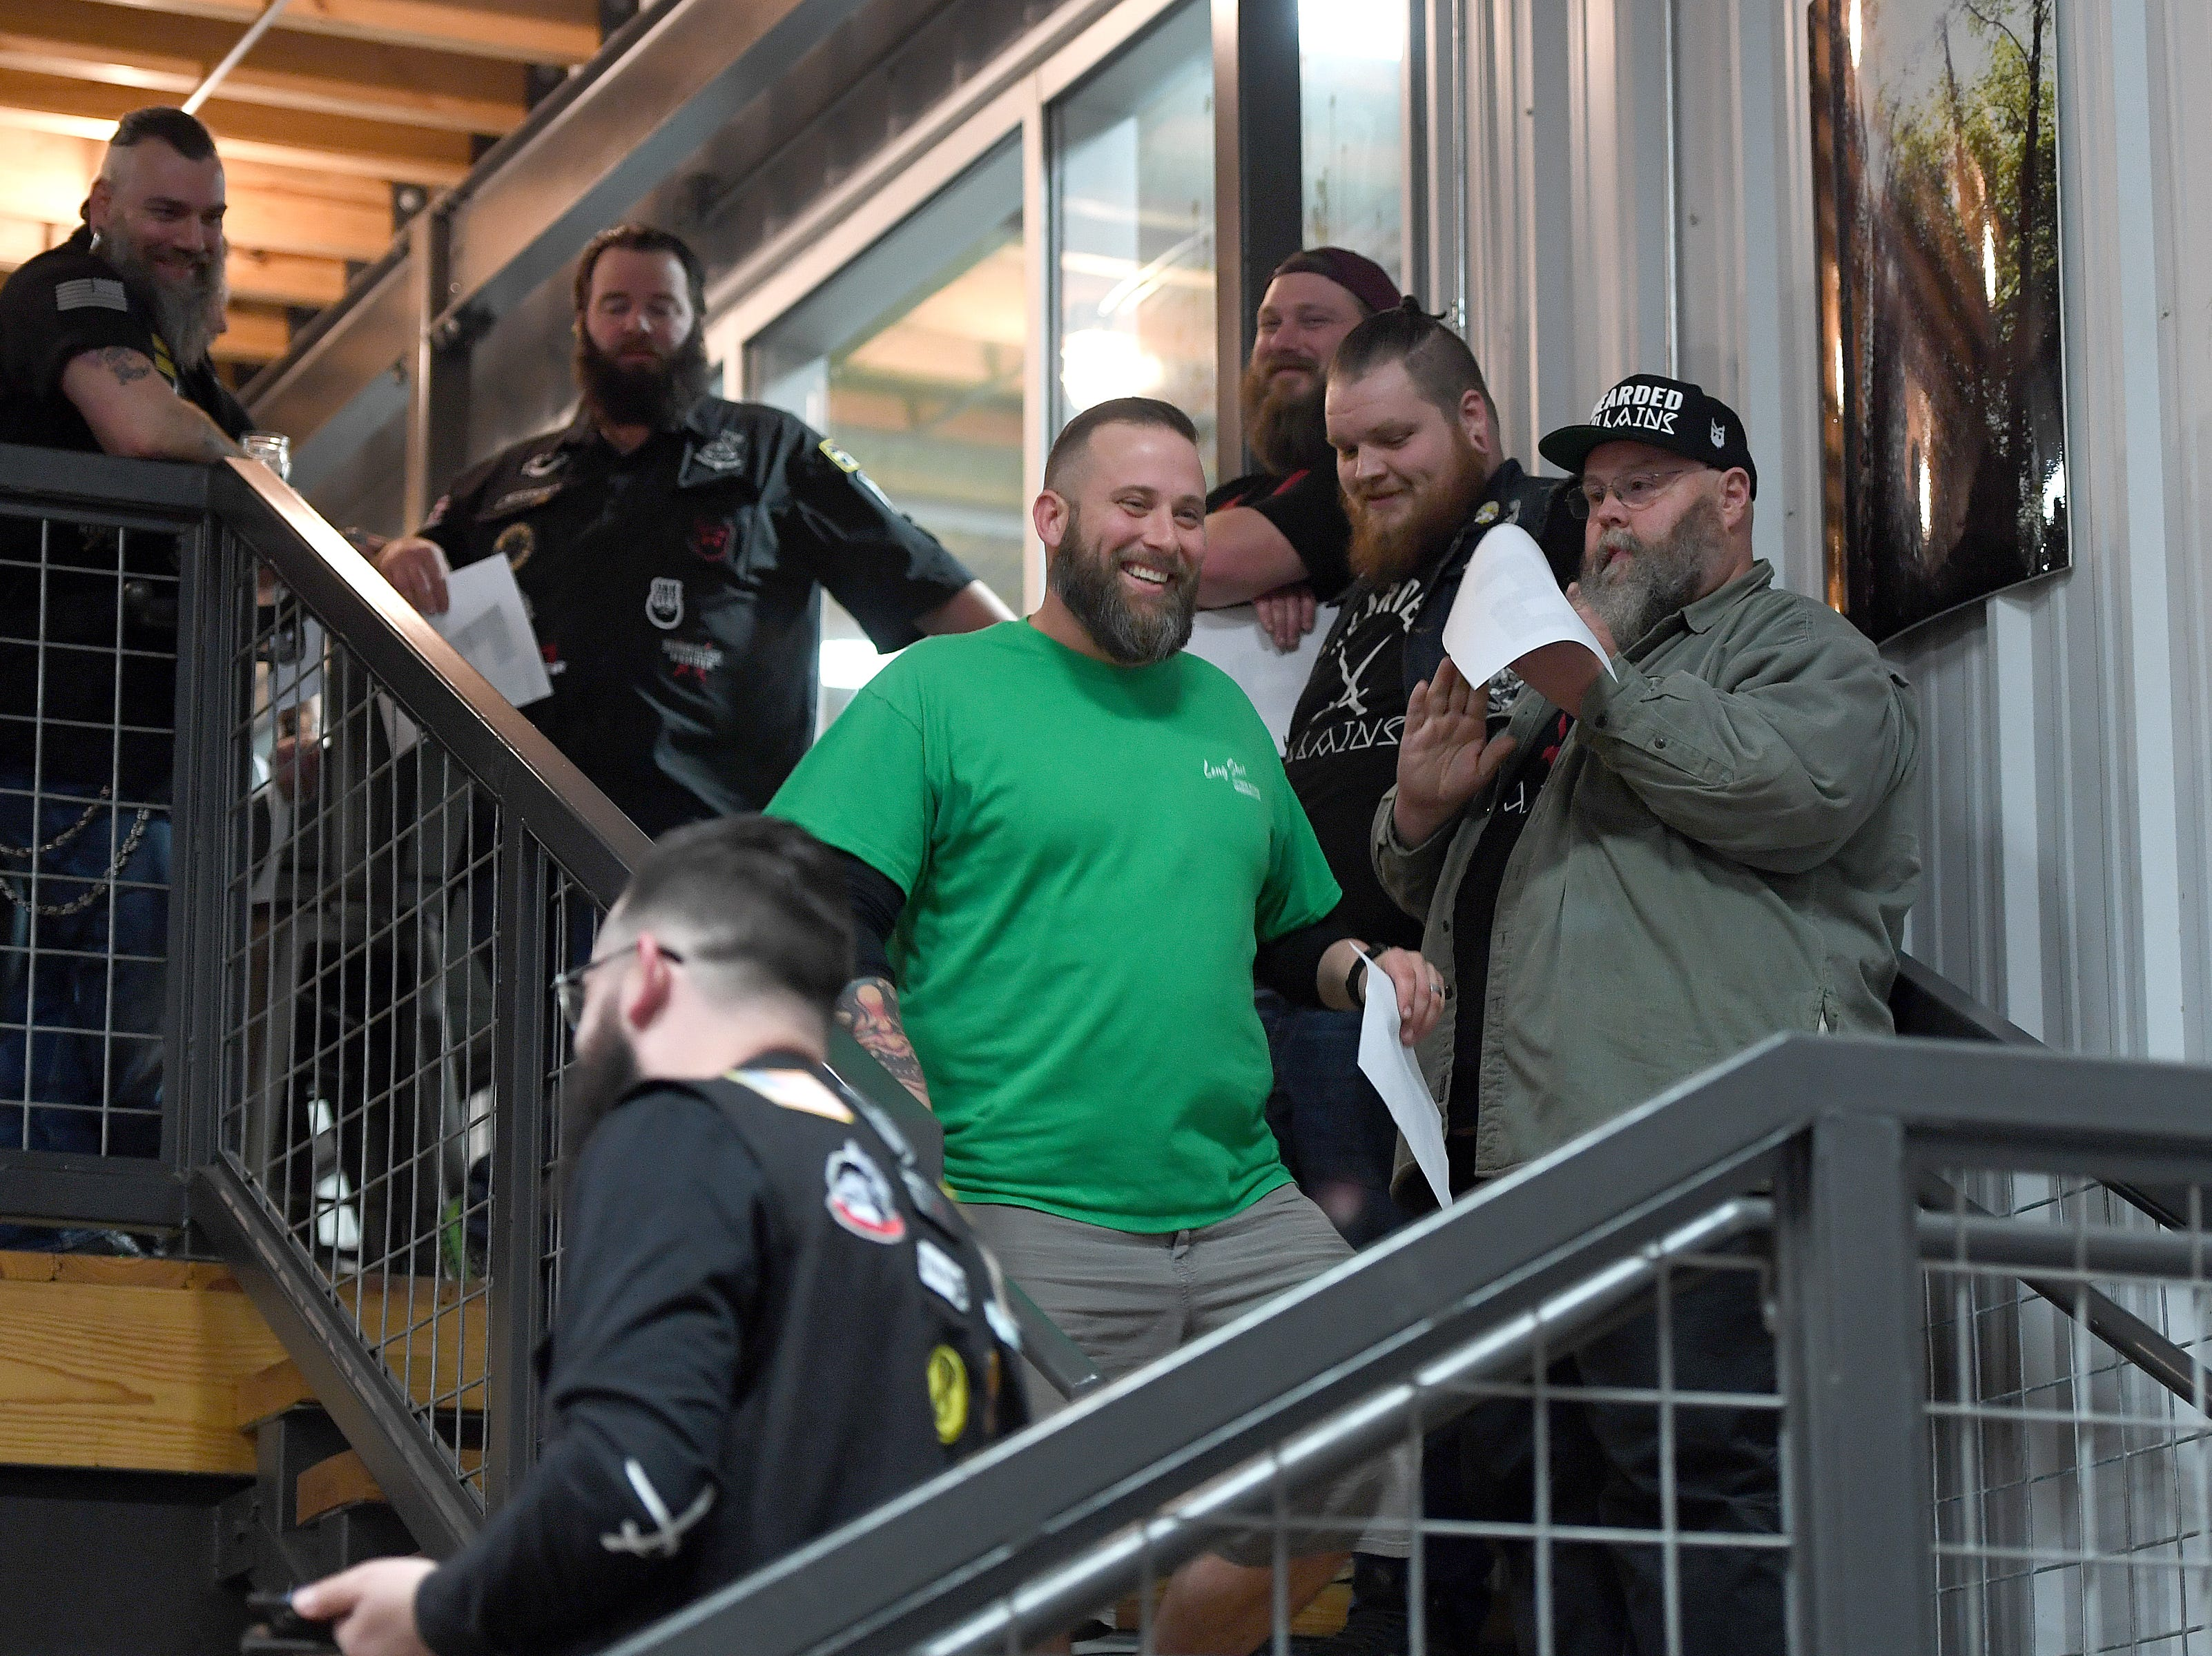 Bold Rock Hard Cider hosted the Winter Beardfest at Bold Rock Hard Cider in Mills River on Jan. 12, 2019 which included a beard competition. Proceeds from the competition benefitted the Black Mountain Home Foster Care. Organizers are hoping to make the event annual.